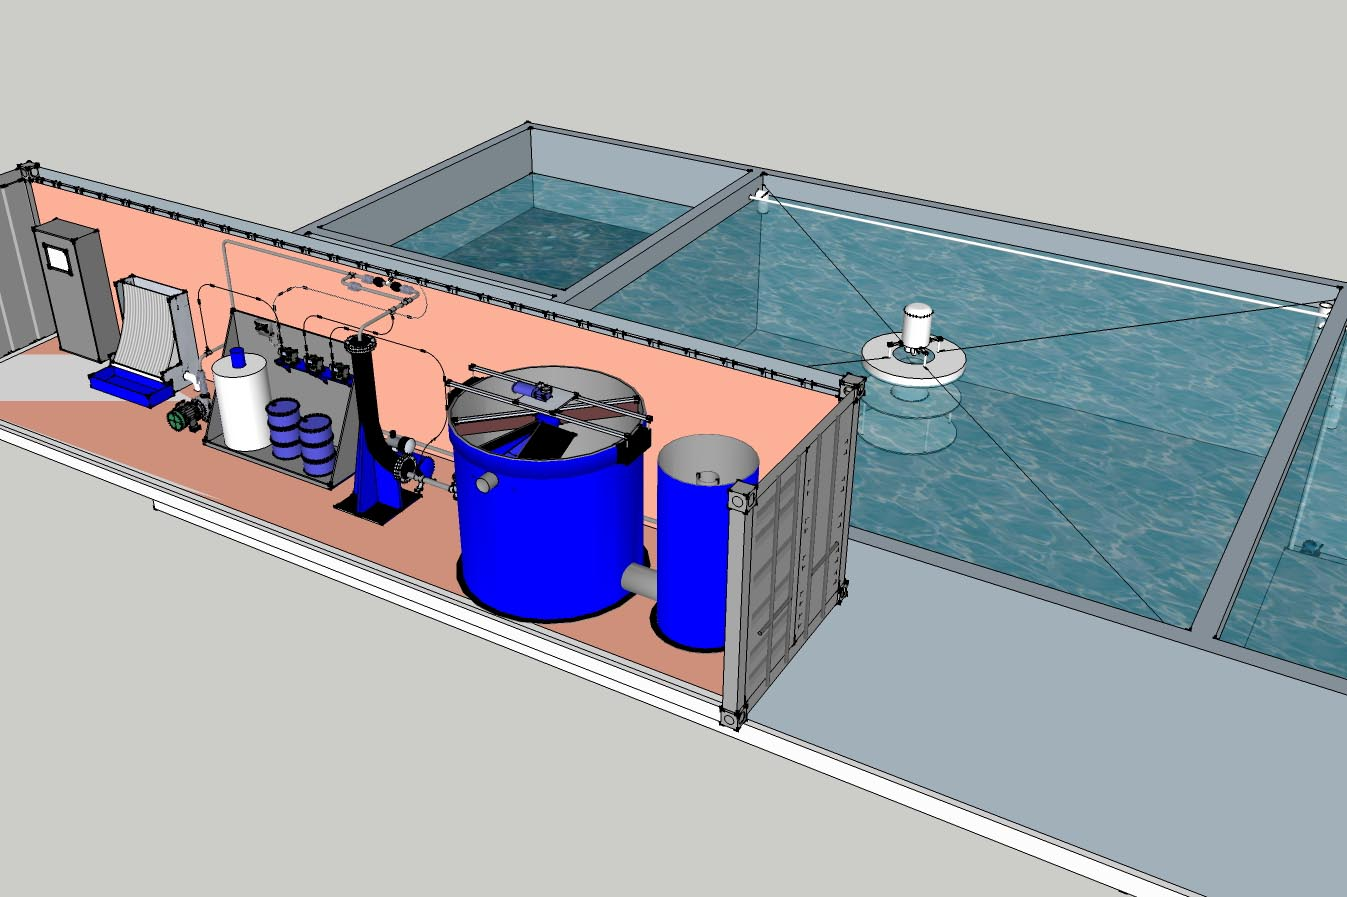 SBR Wastewater Treatment Plant http://www.pitt-gmbh.de/englisch/index.php?s=produkt_am